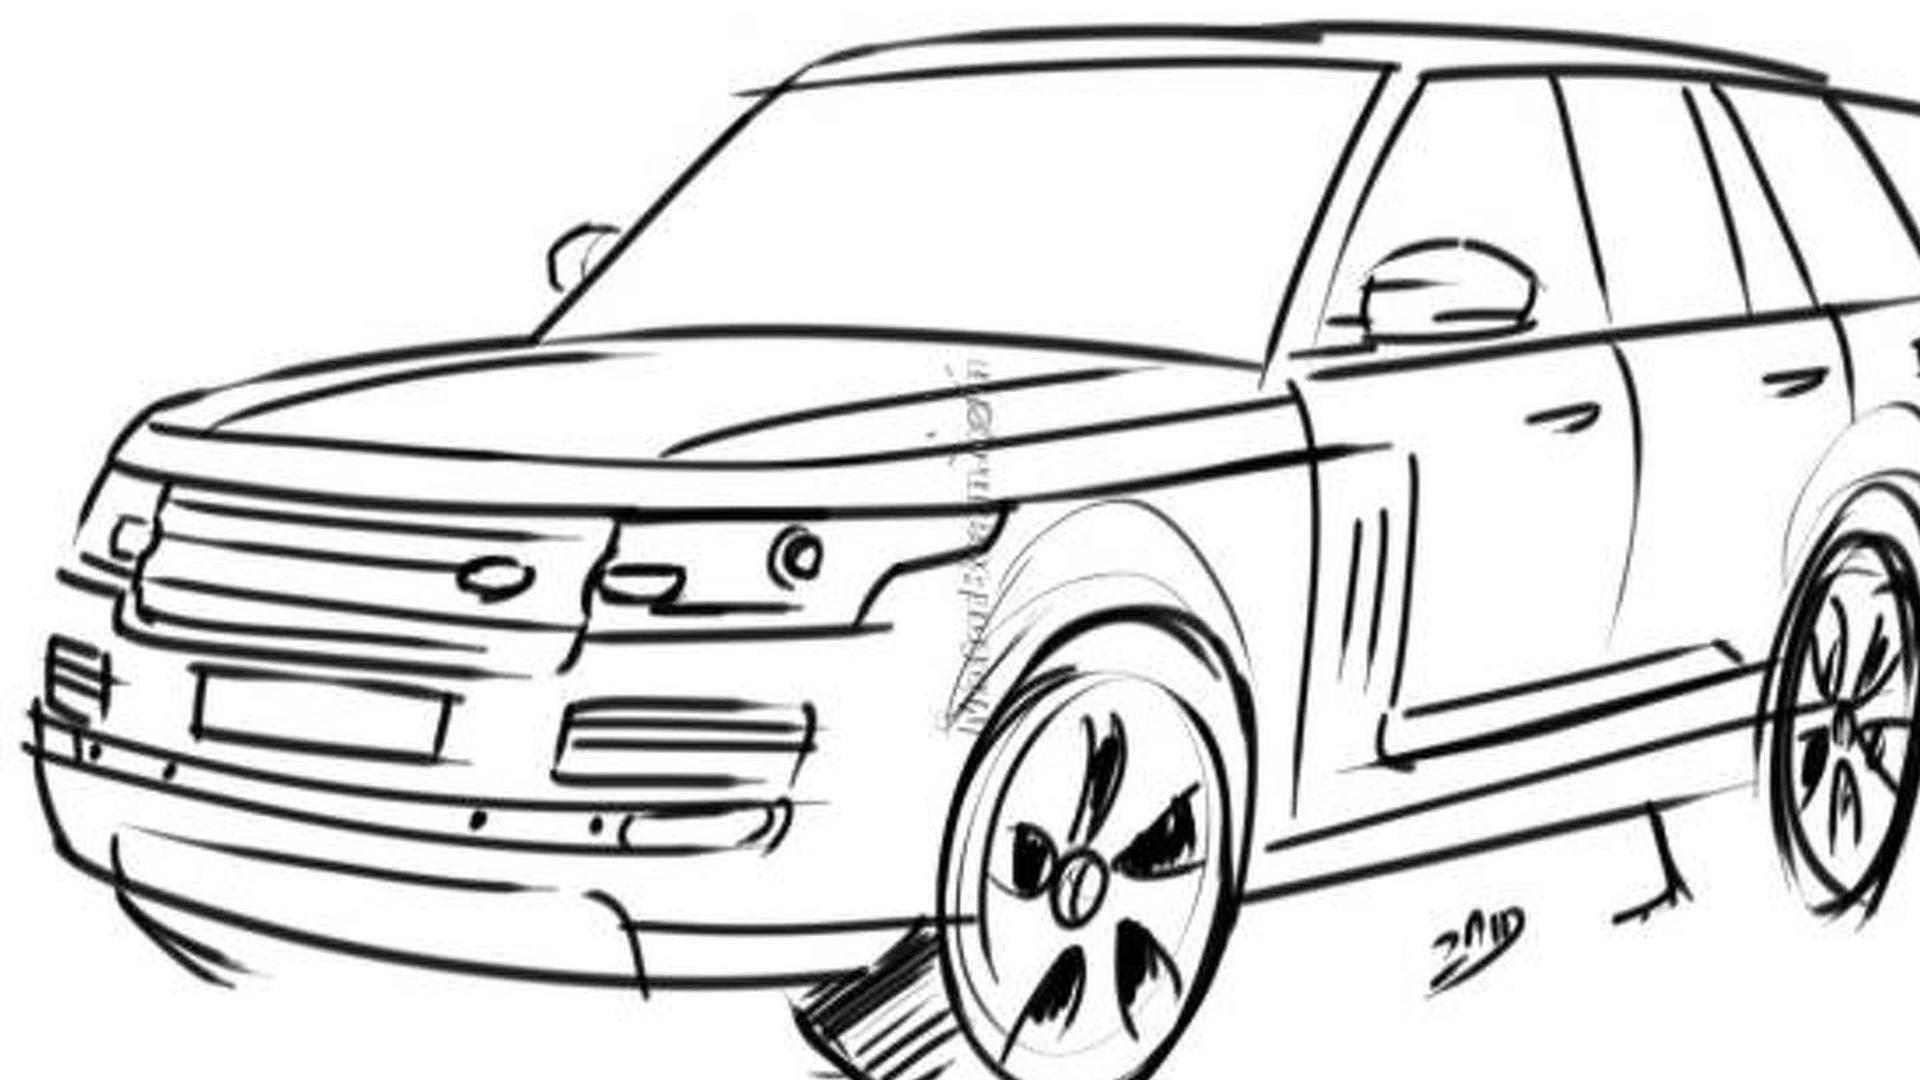 New Range Rover Speculatively Rendered